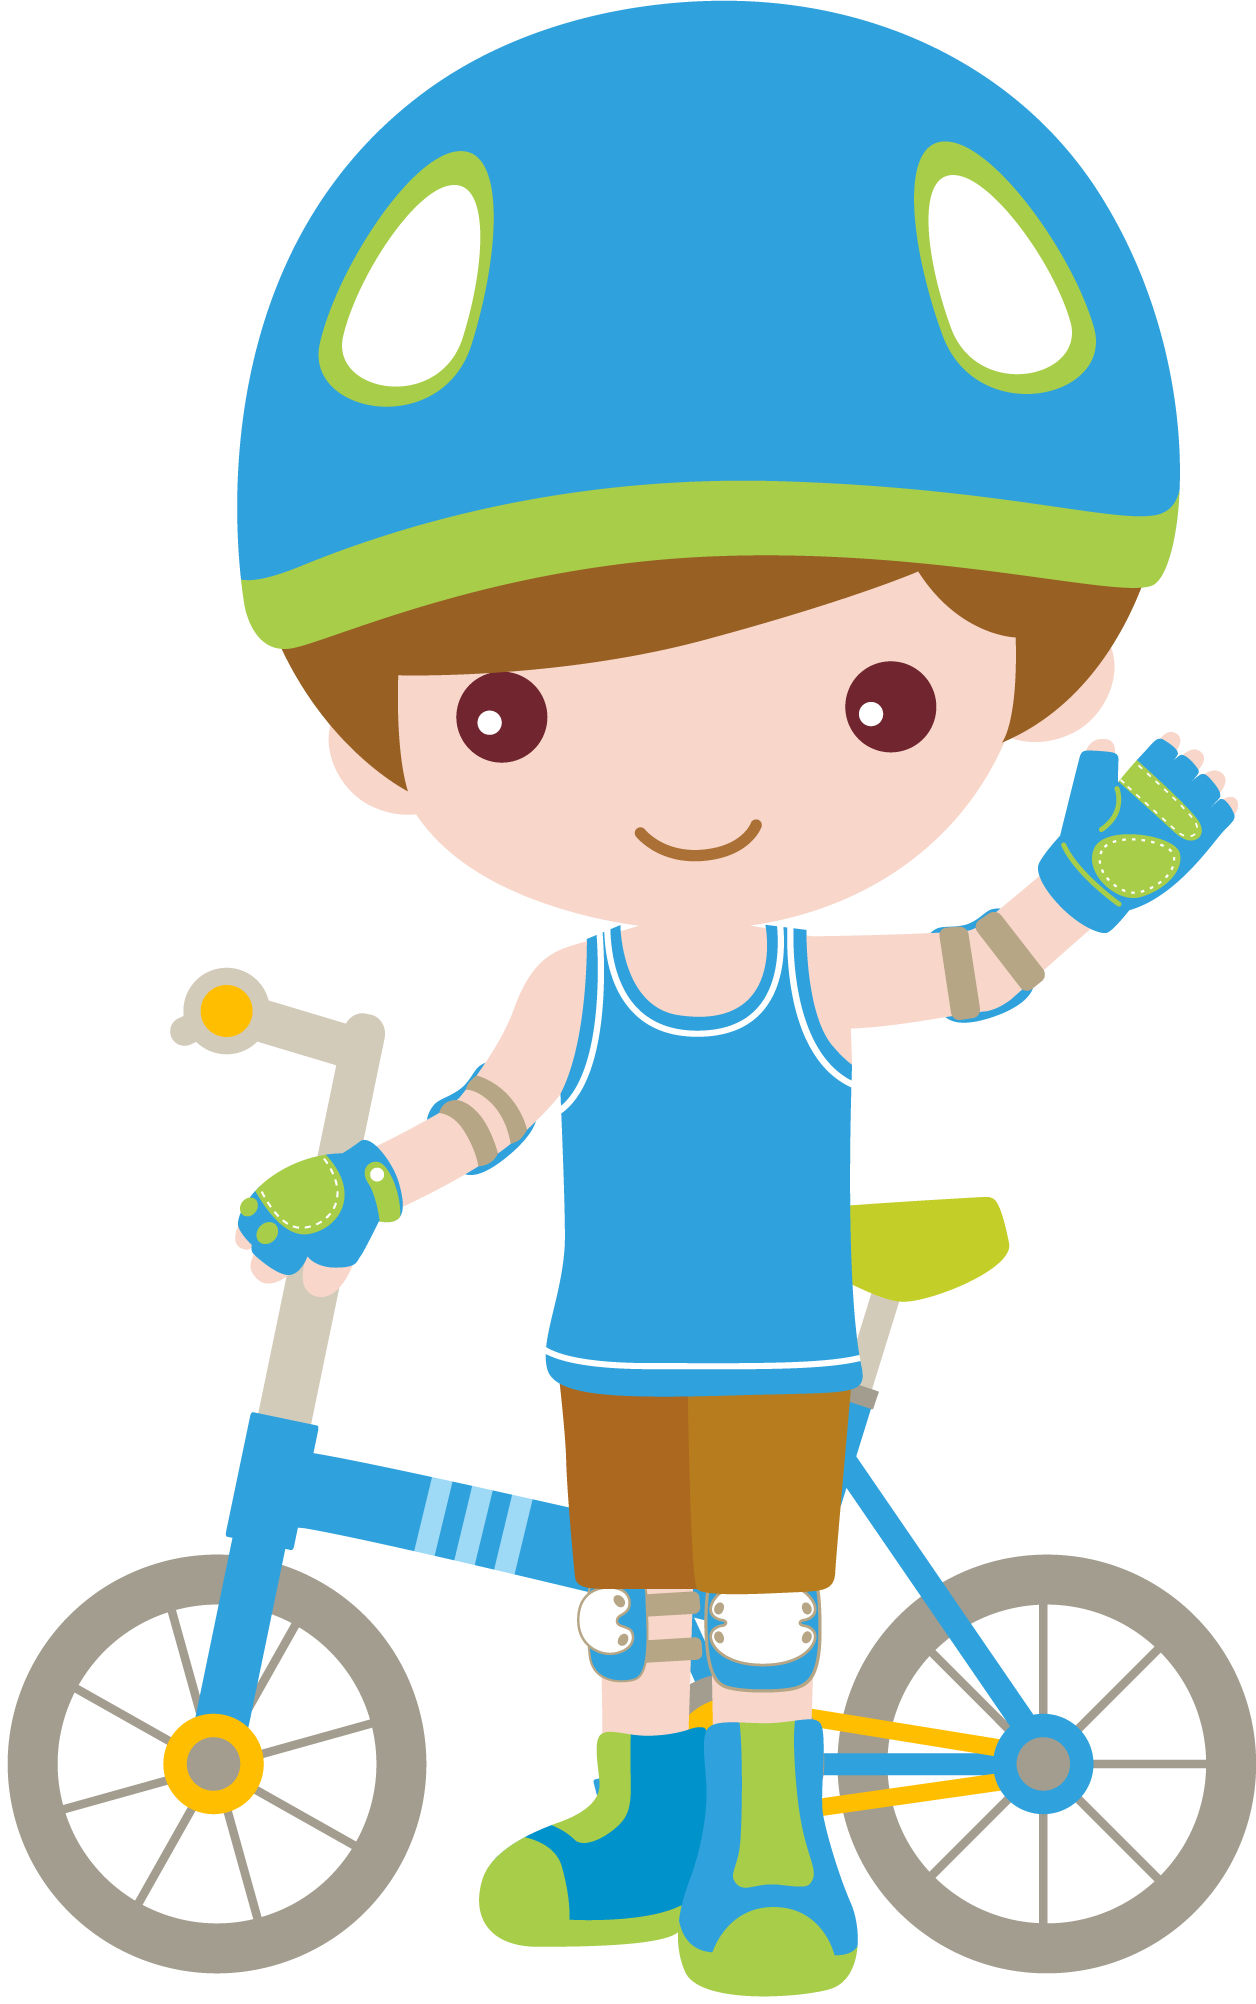 Clipart door boy. Bicicleta stikers pinterest special